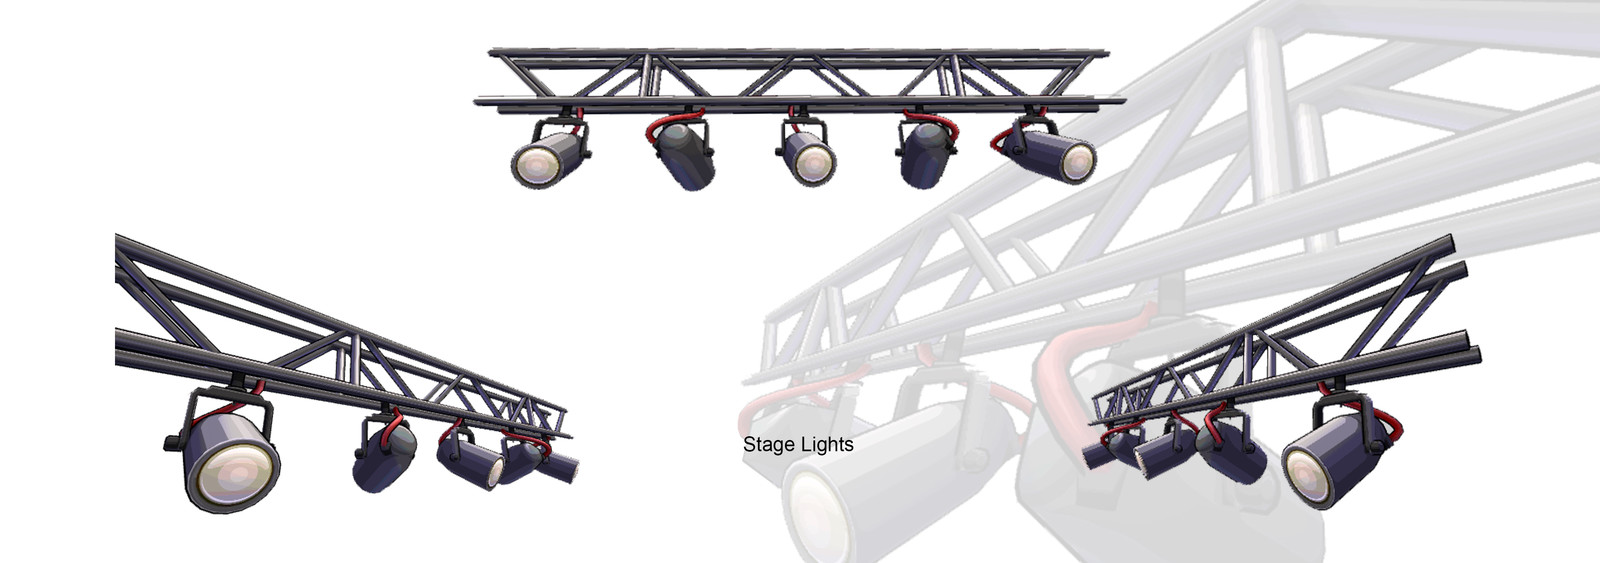 Stage Lights Model and texture